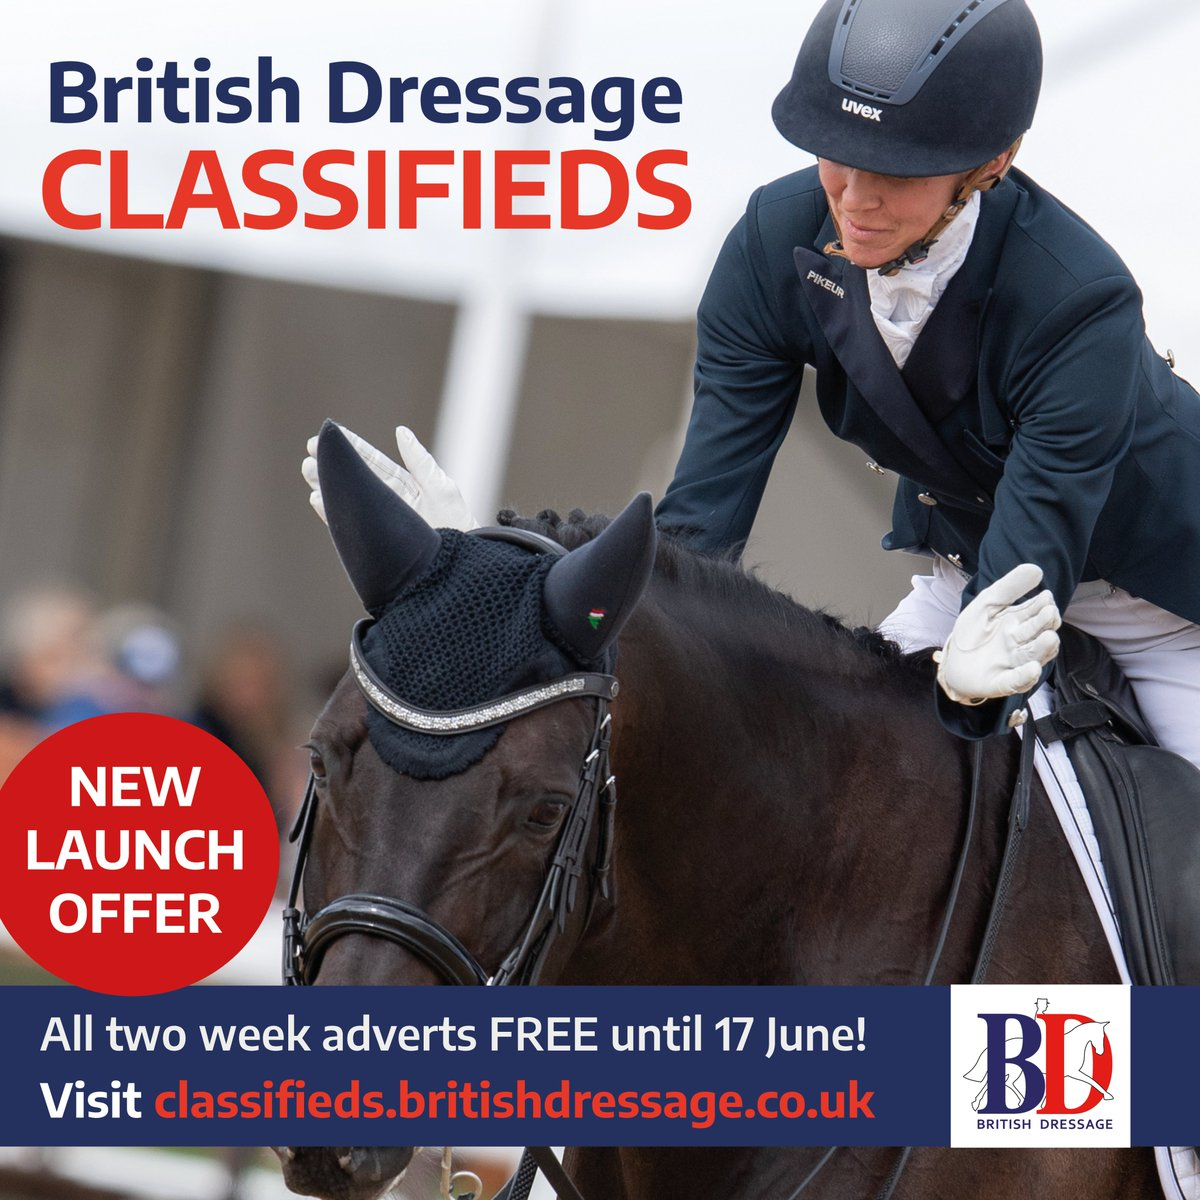 There's just hours left to make the most of our British Dressage Classifieds launch offer 💥  Until midnight we're giving you the chance to advertise for FREE! Login, upload your advert and make the most of our complimentary two week deal 😍  https://t.co/OCSZHFZgYO https://t.co/wdshfE2v7e